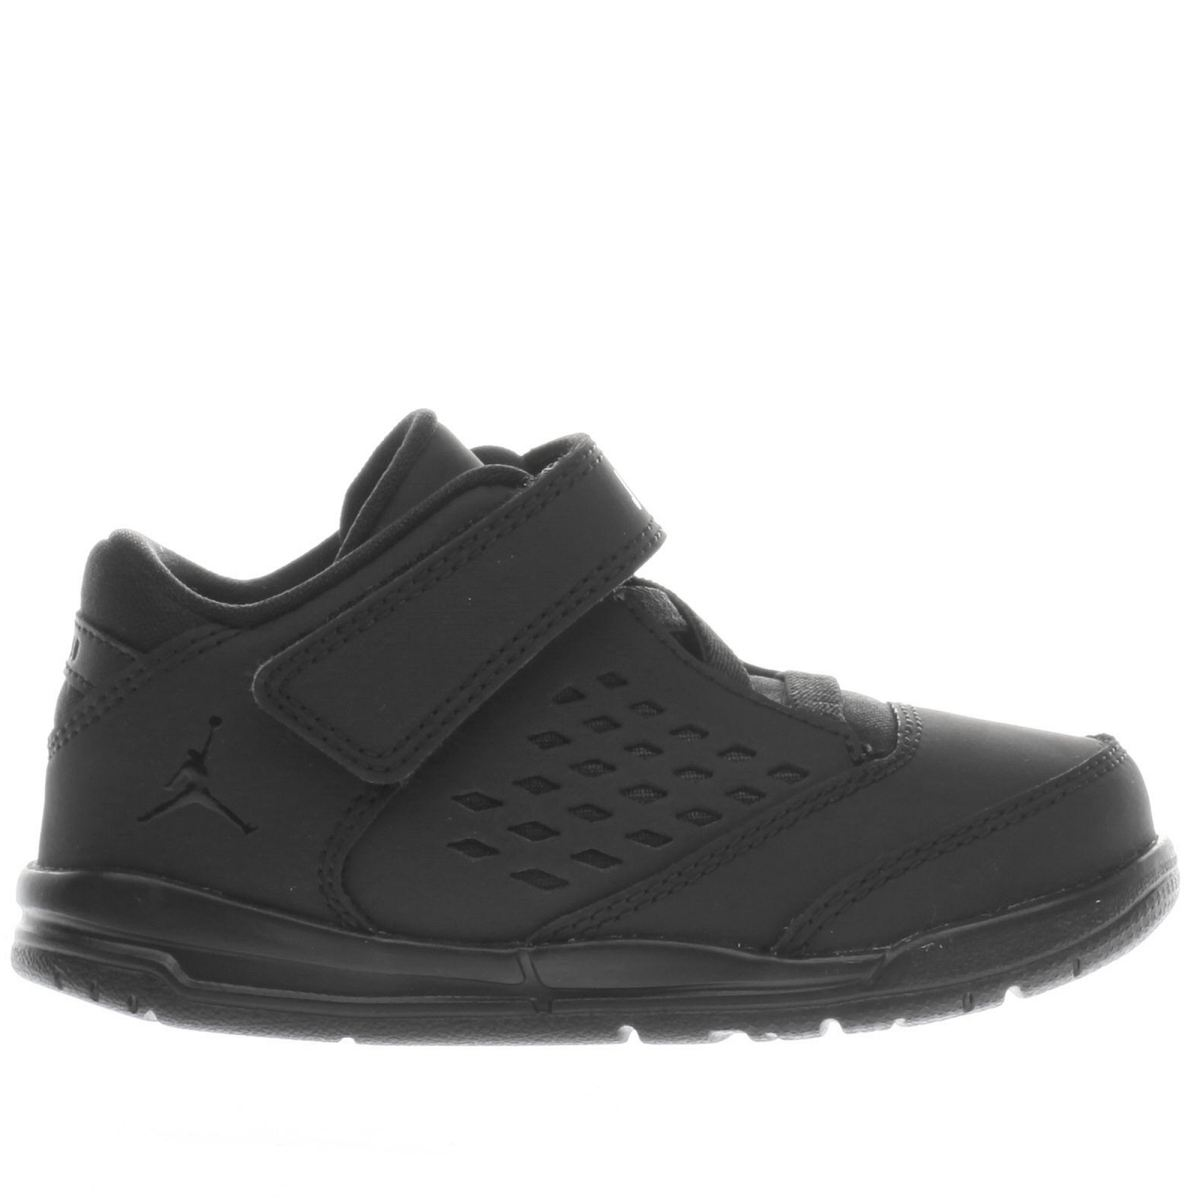 nike jordan black flight origin 4 Toddler Trainers